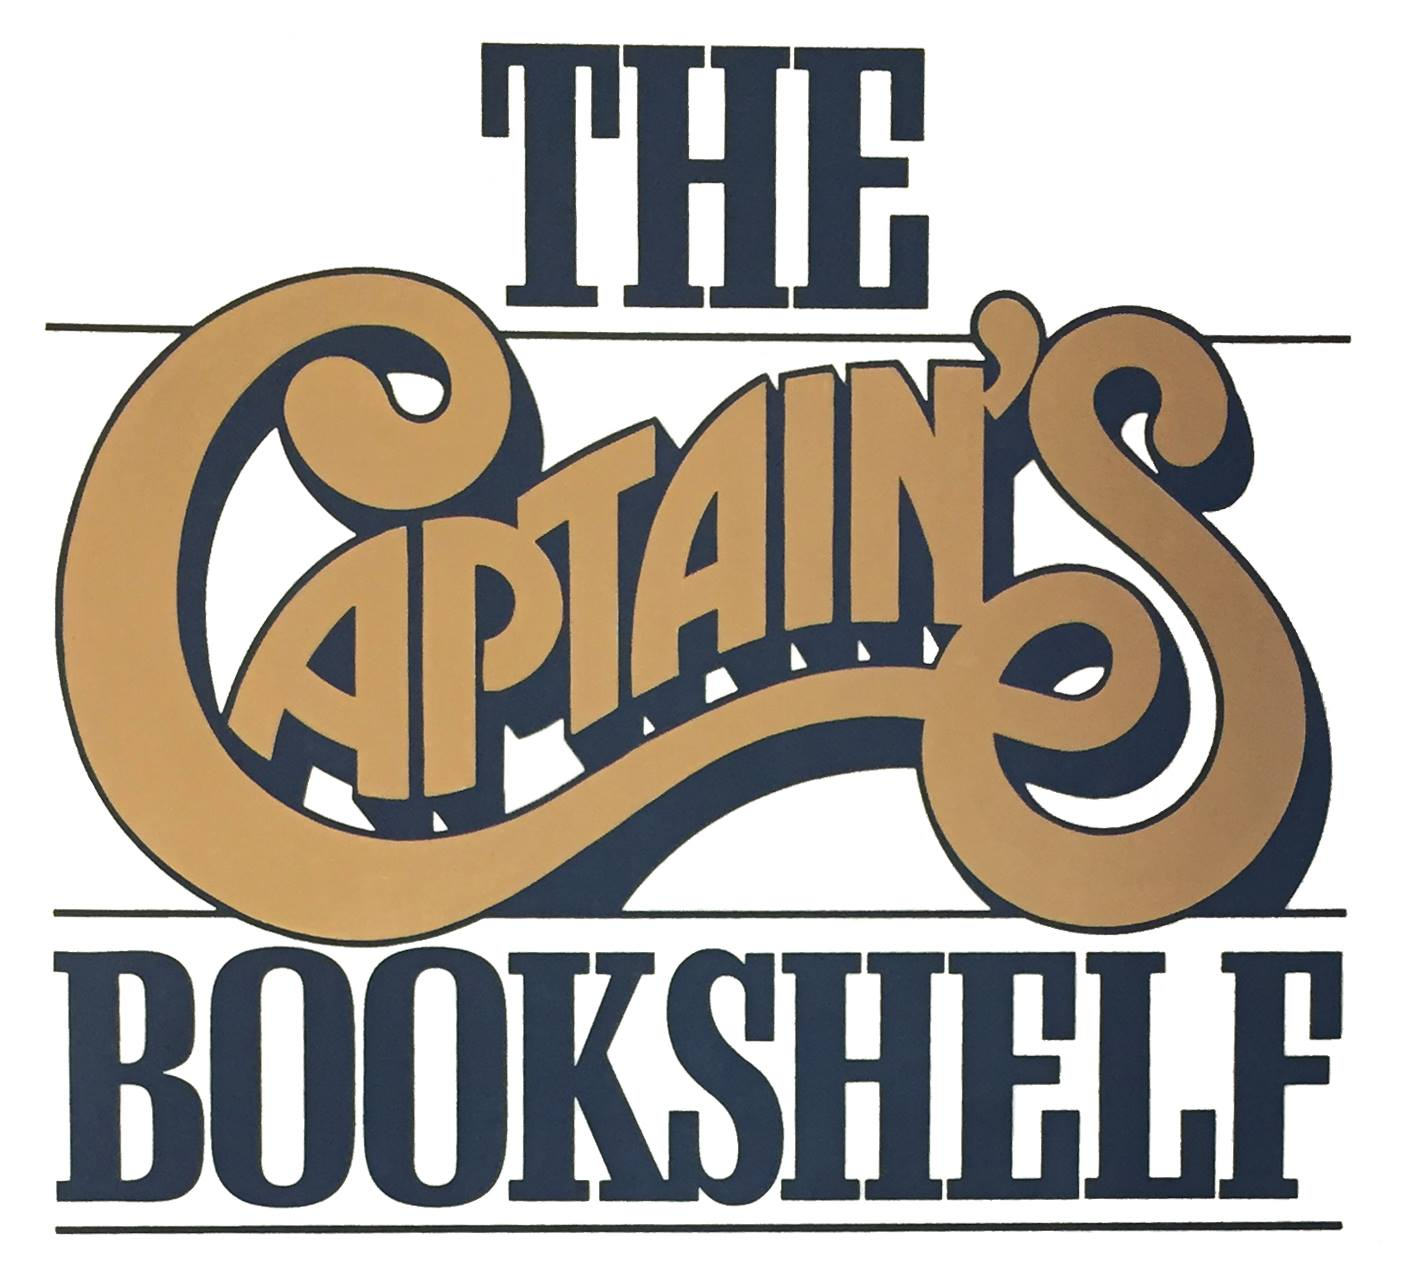 The Captain's Bookshelf Inc.